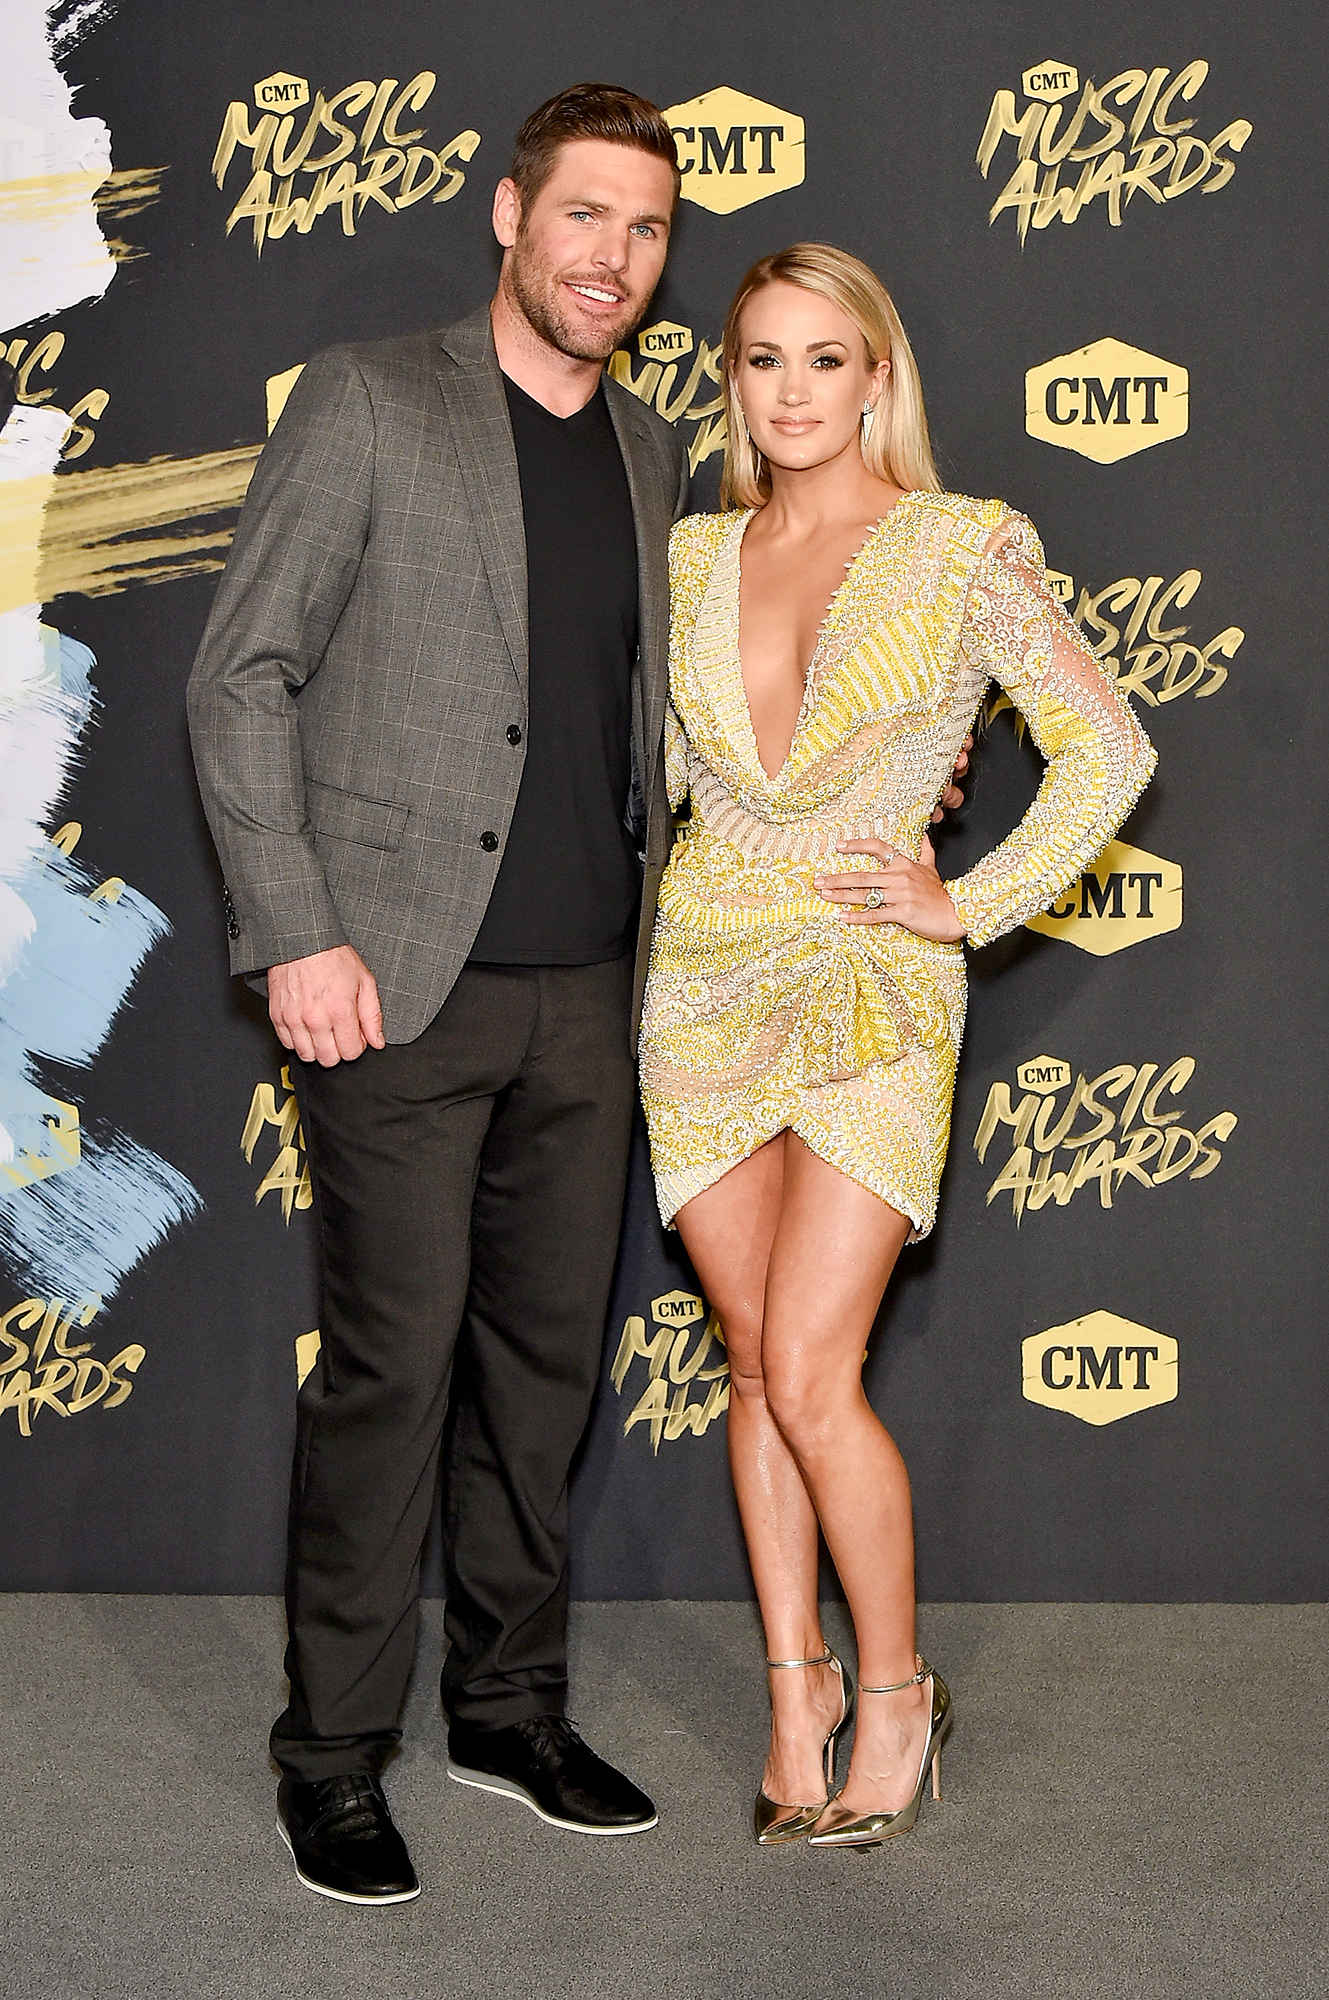 Carrie Underwood Imagines Her Life as a Mom of 2: 'It's Going to Be a Different Ball Game' carrie-mike